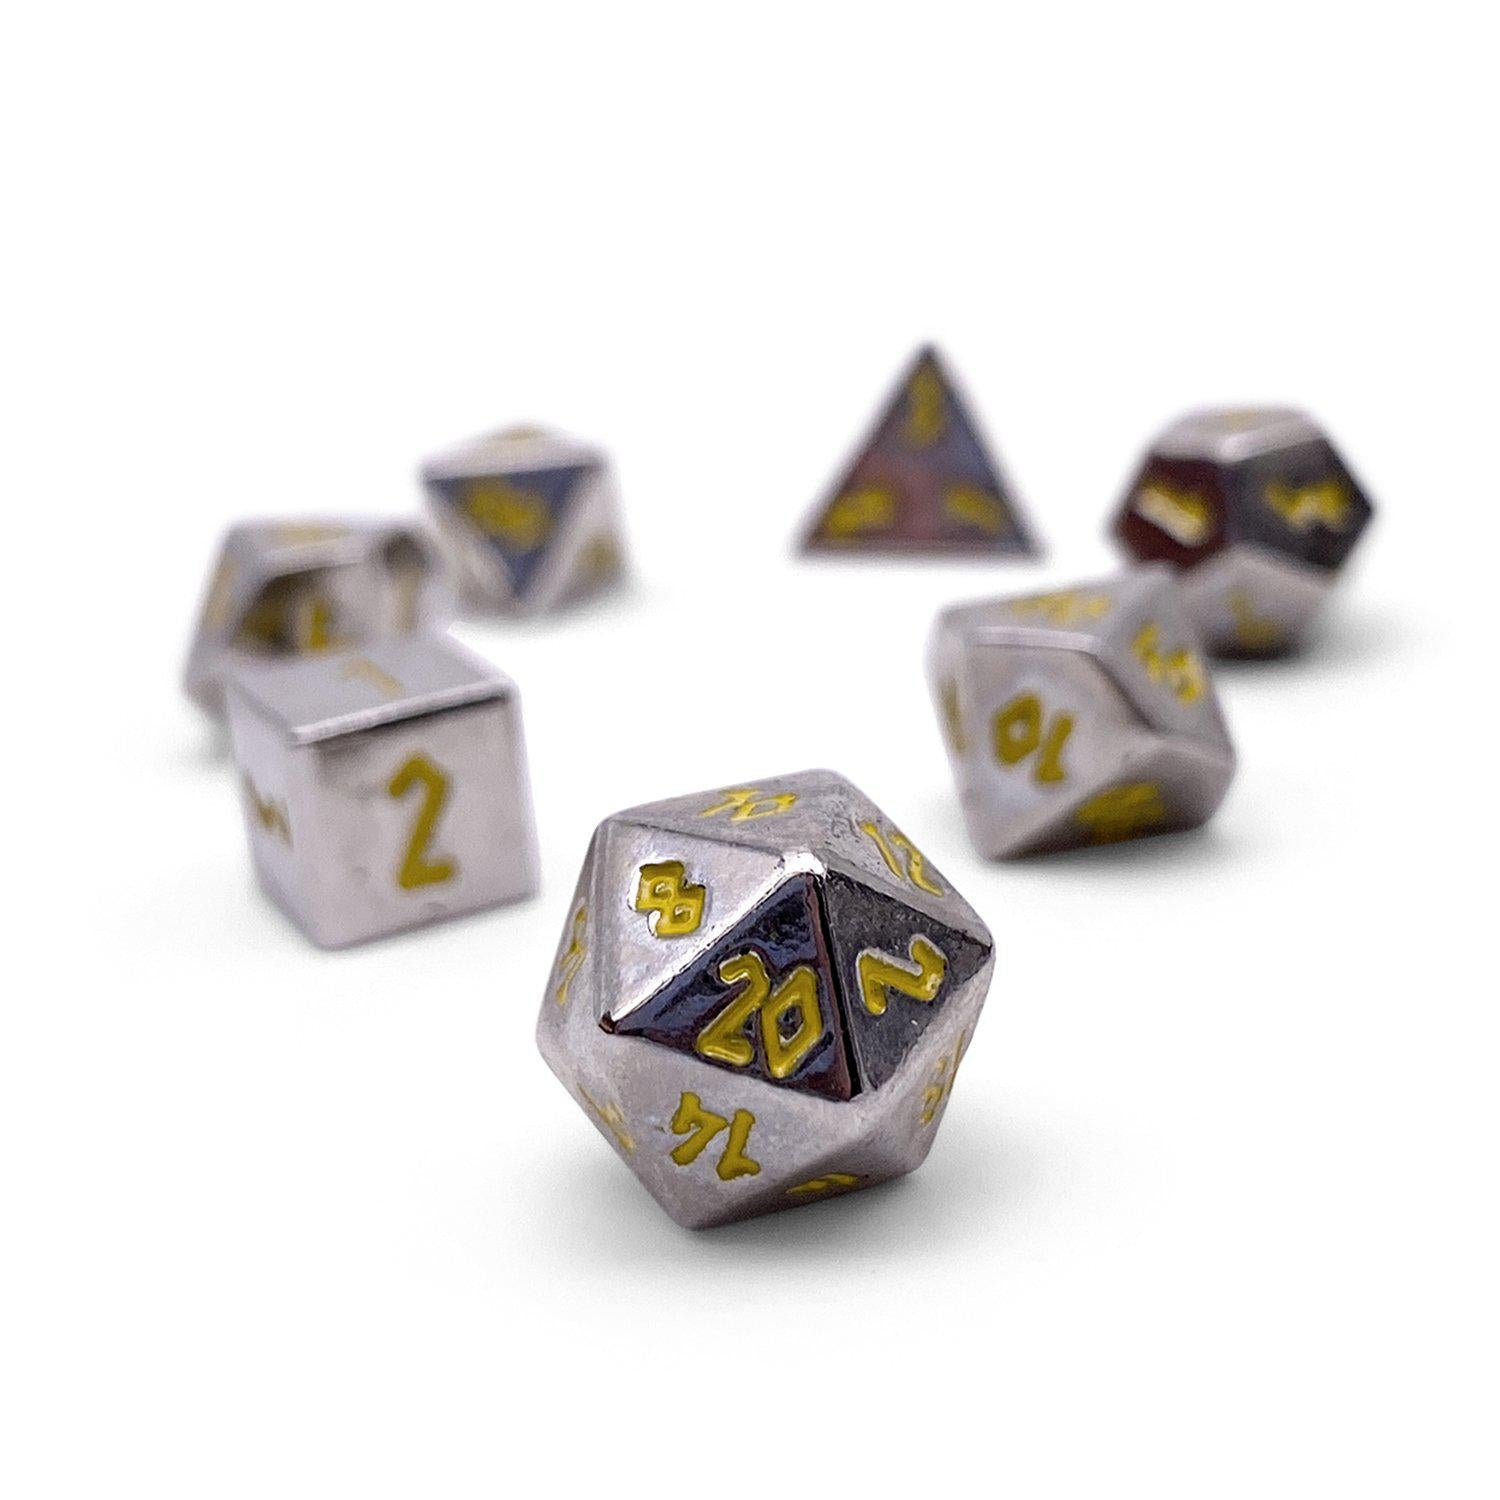 Silver Dragon Pebble ™ Dice - 10mm Alloy Mini Polyhedral Dice Set